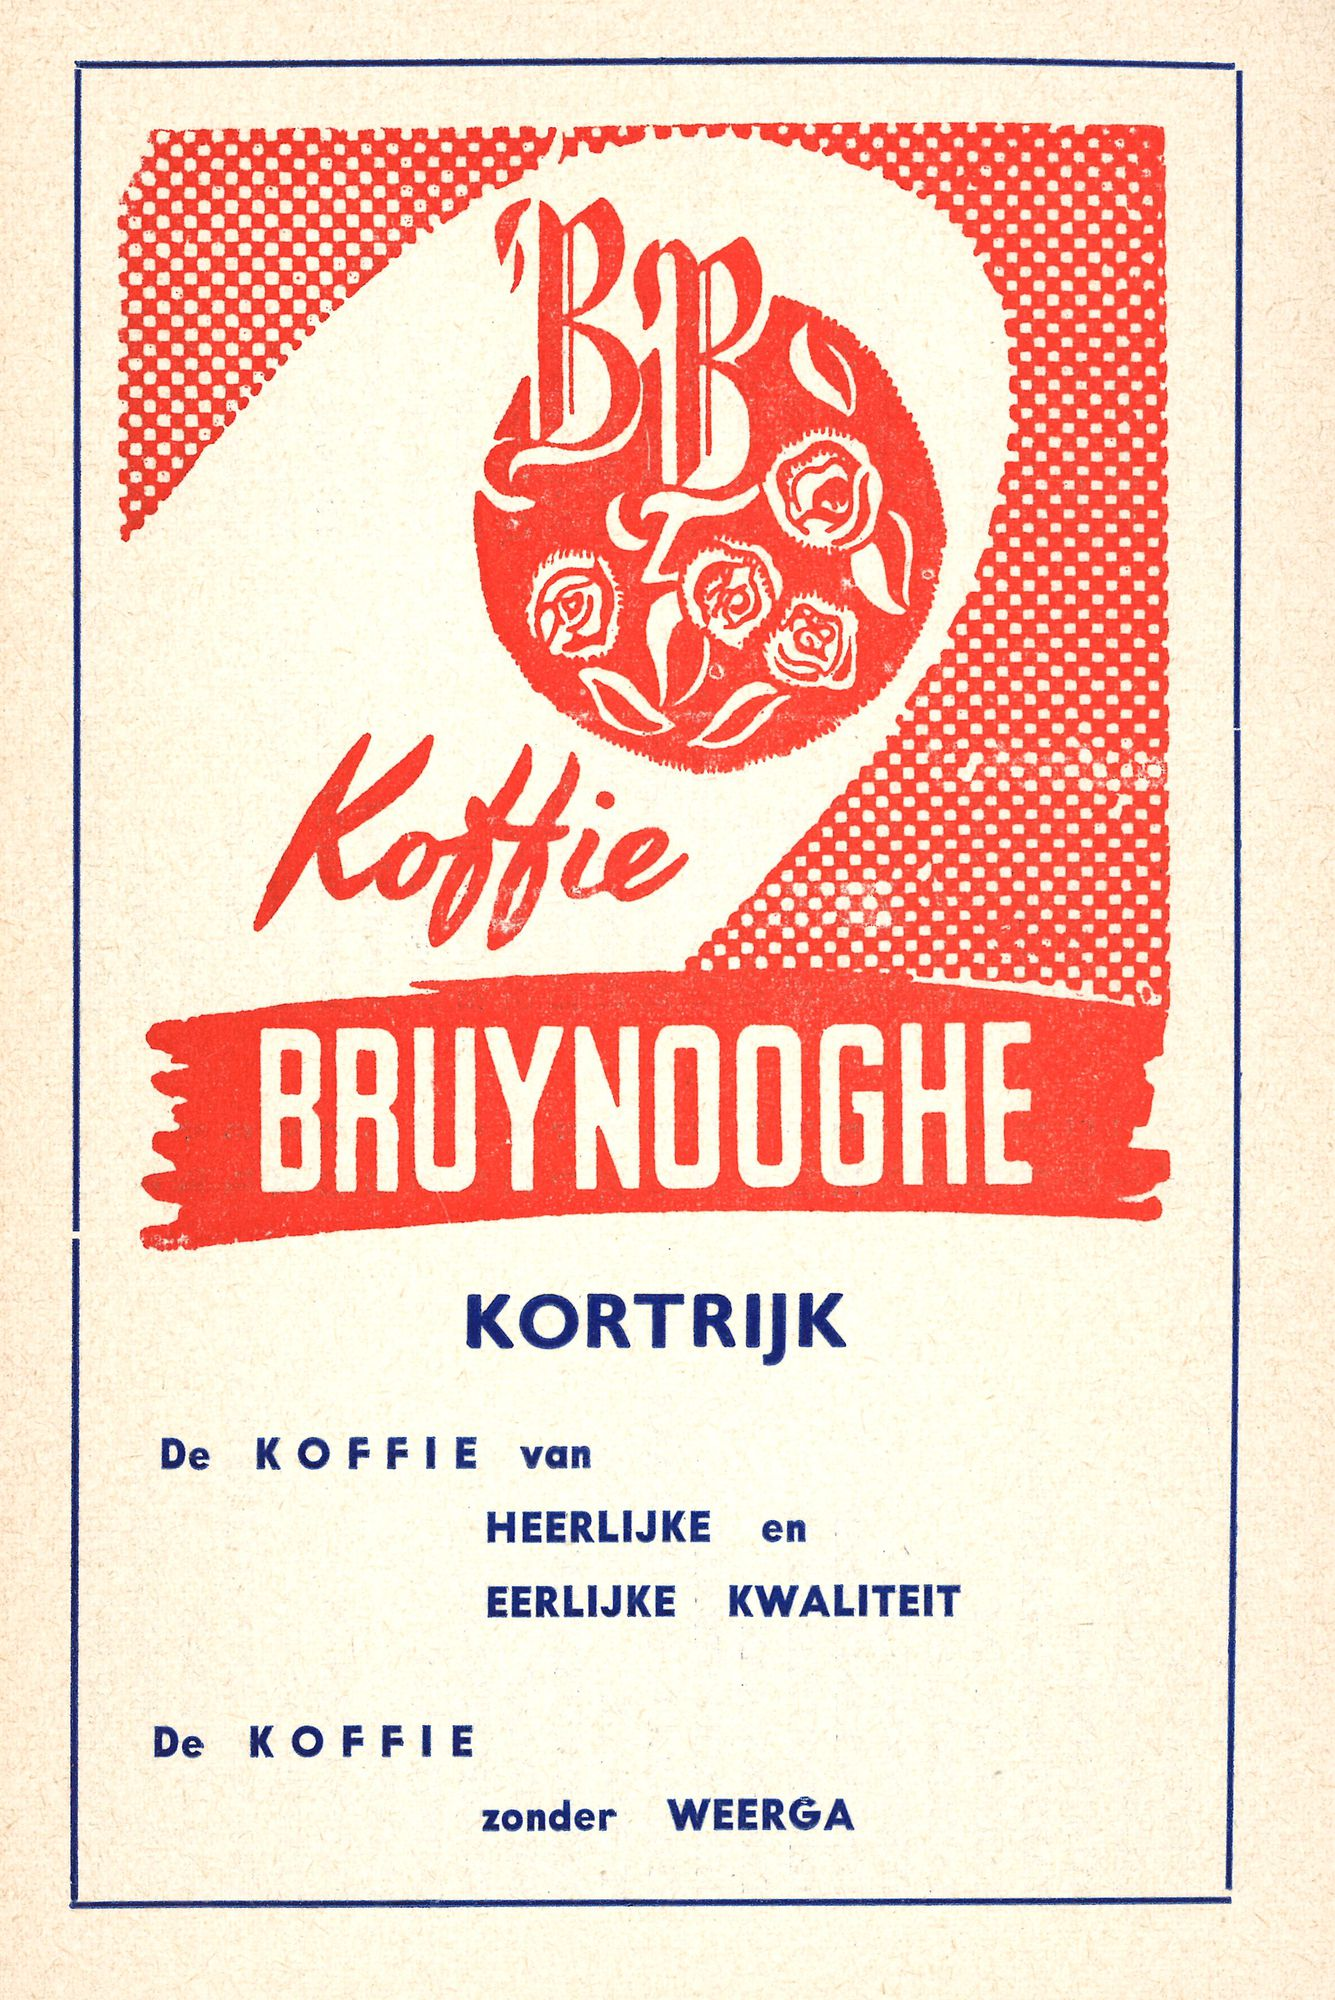 Reclame Bruynooghe